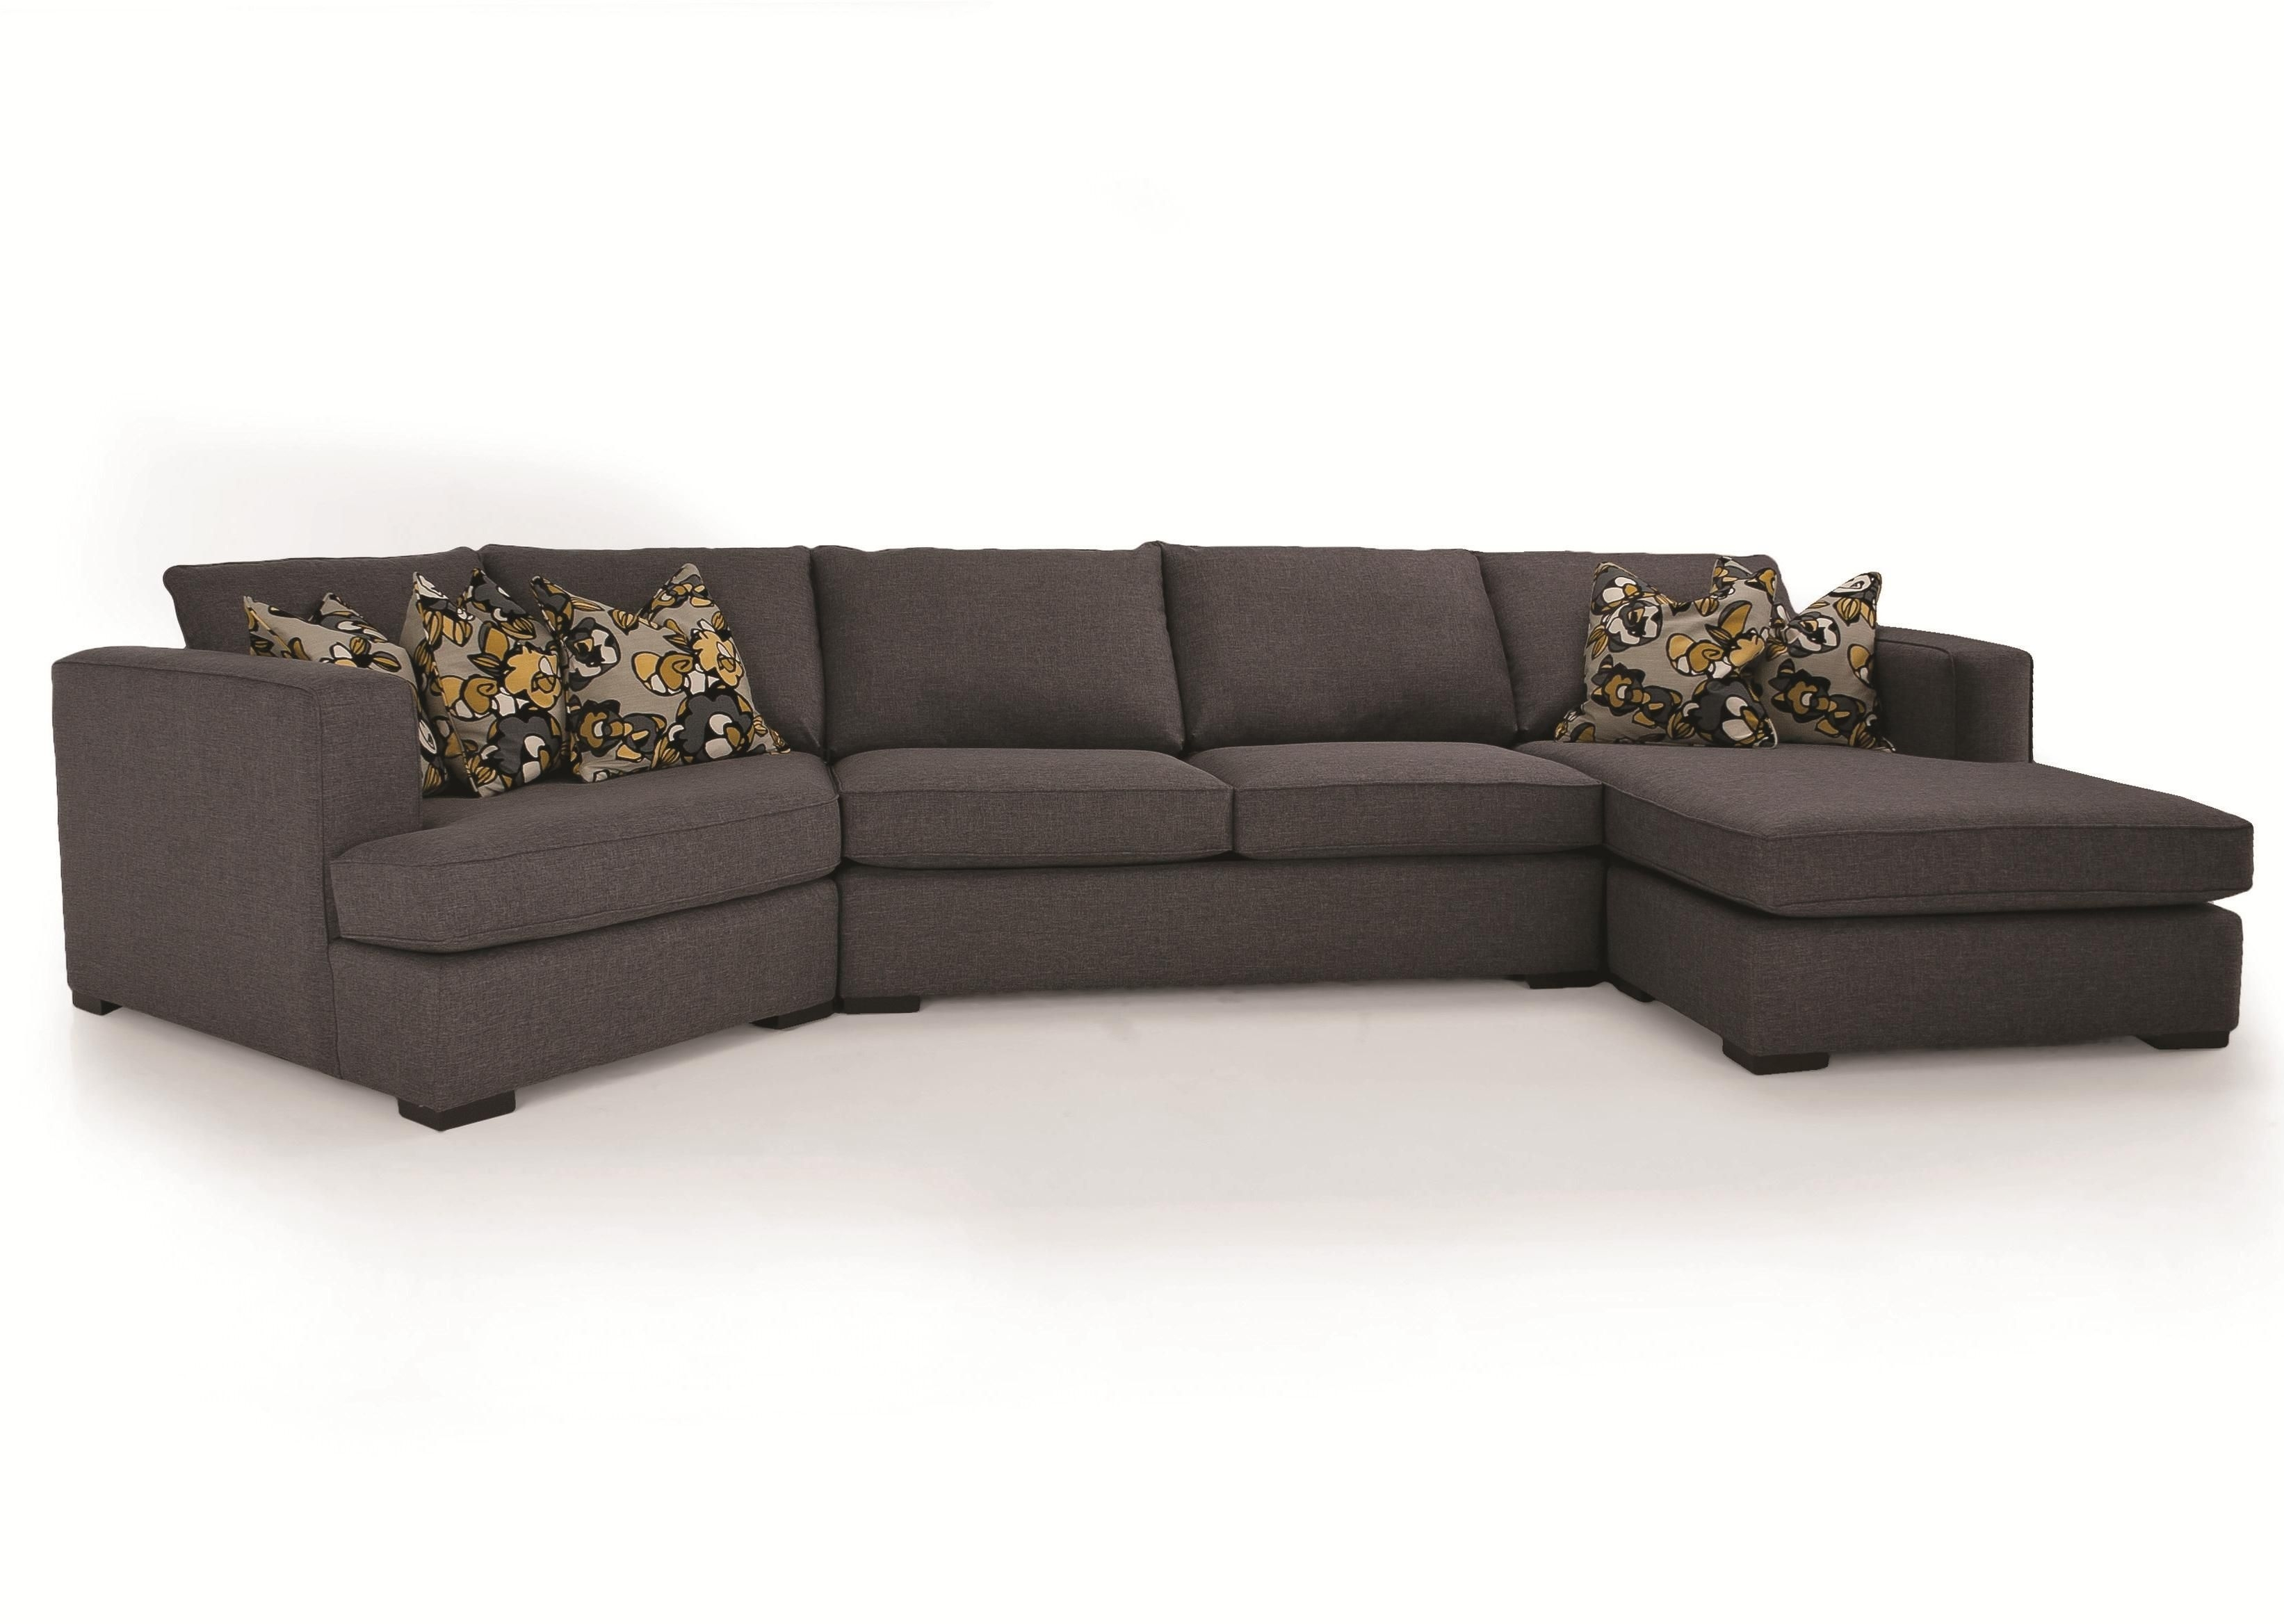 Decor Rest 2900 3 Piece Contemporary Sectional With Lhf Cuddler At Intended For Blaine 3 Piece Sectionals (Image 10 of 25)